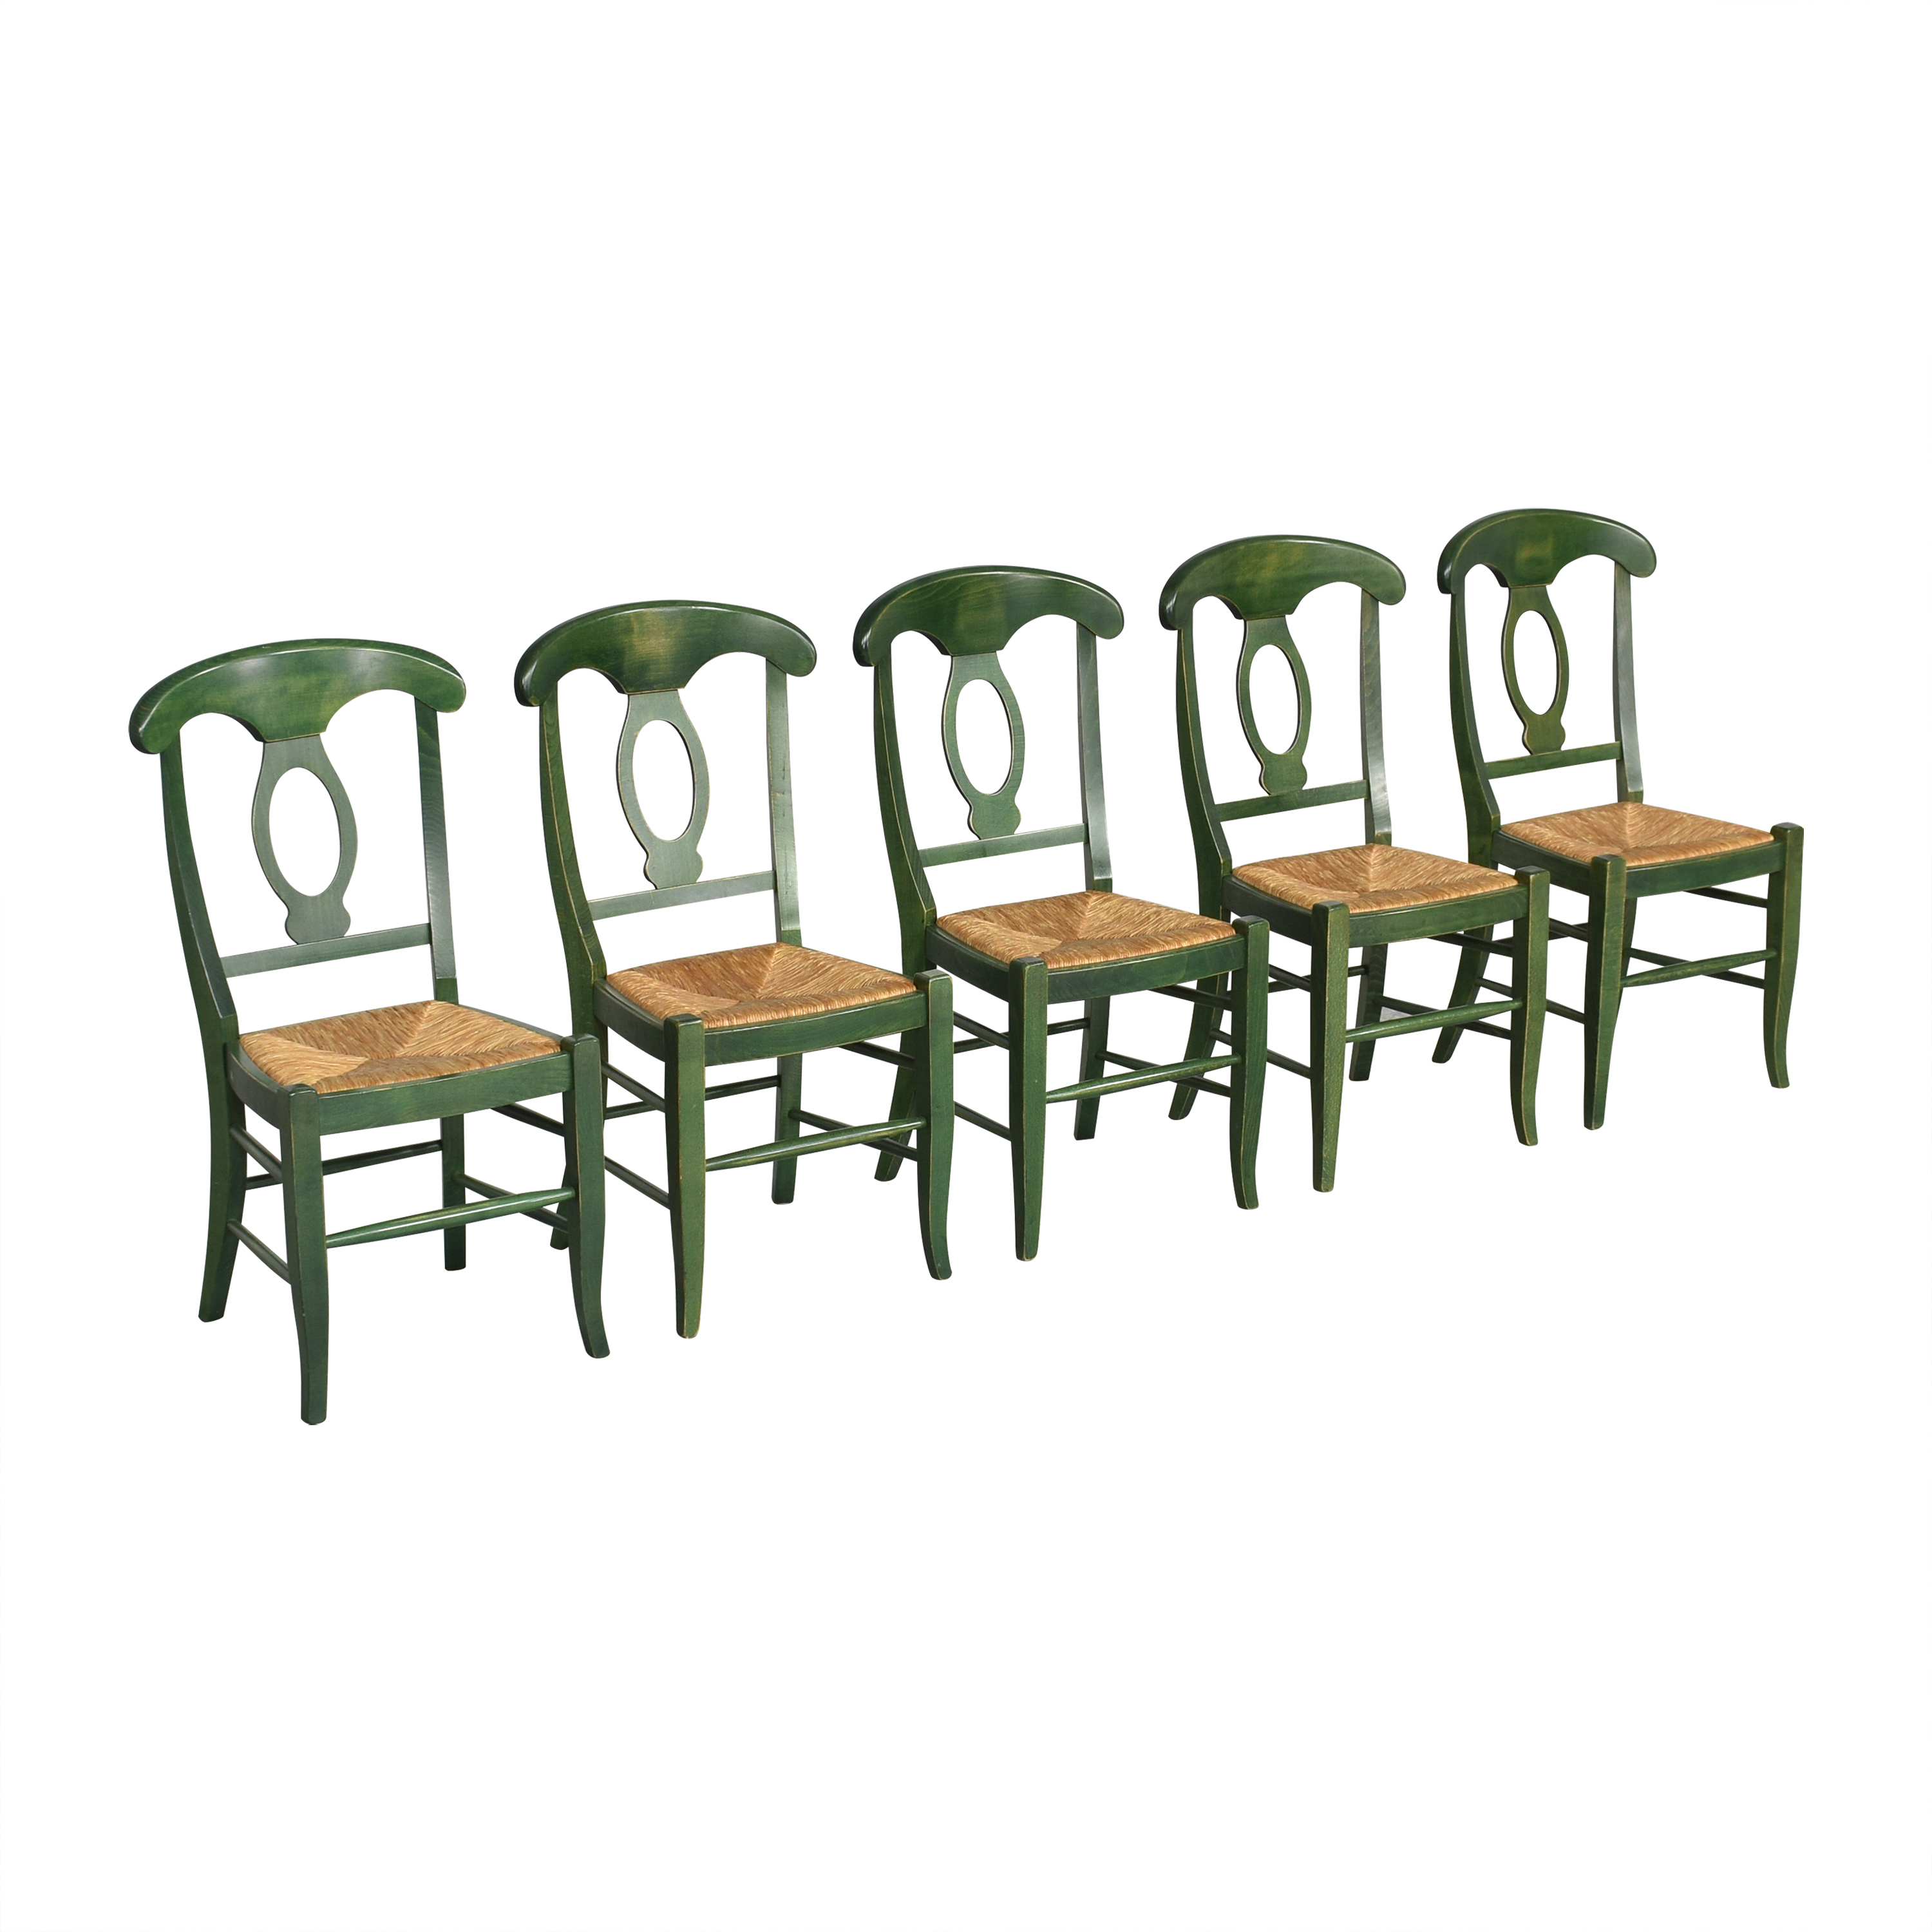 Pottery Barn Pottery Barn Napoleon Dining Side Chairs Green